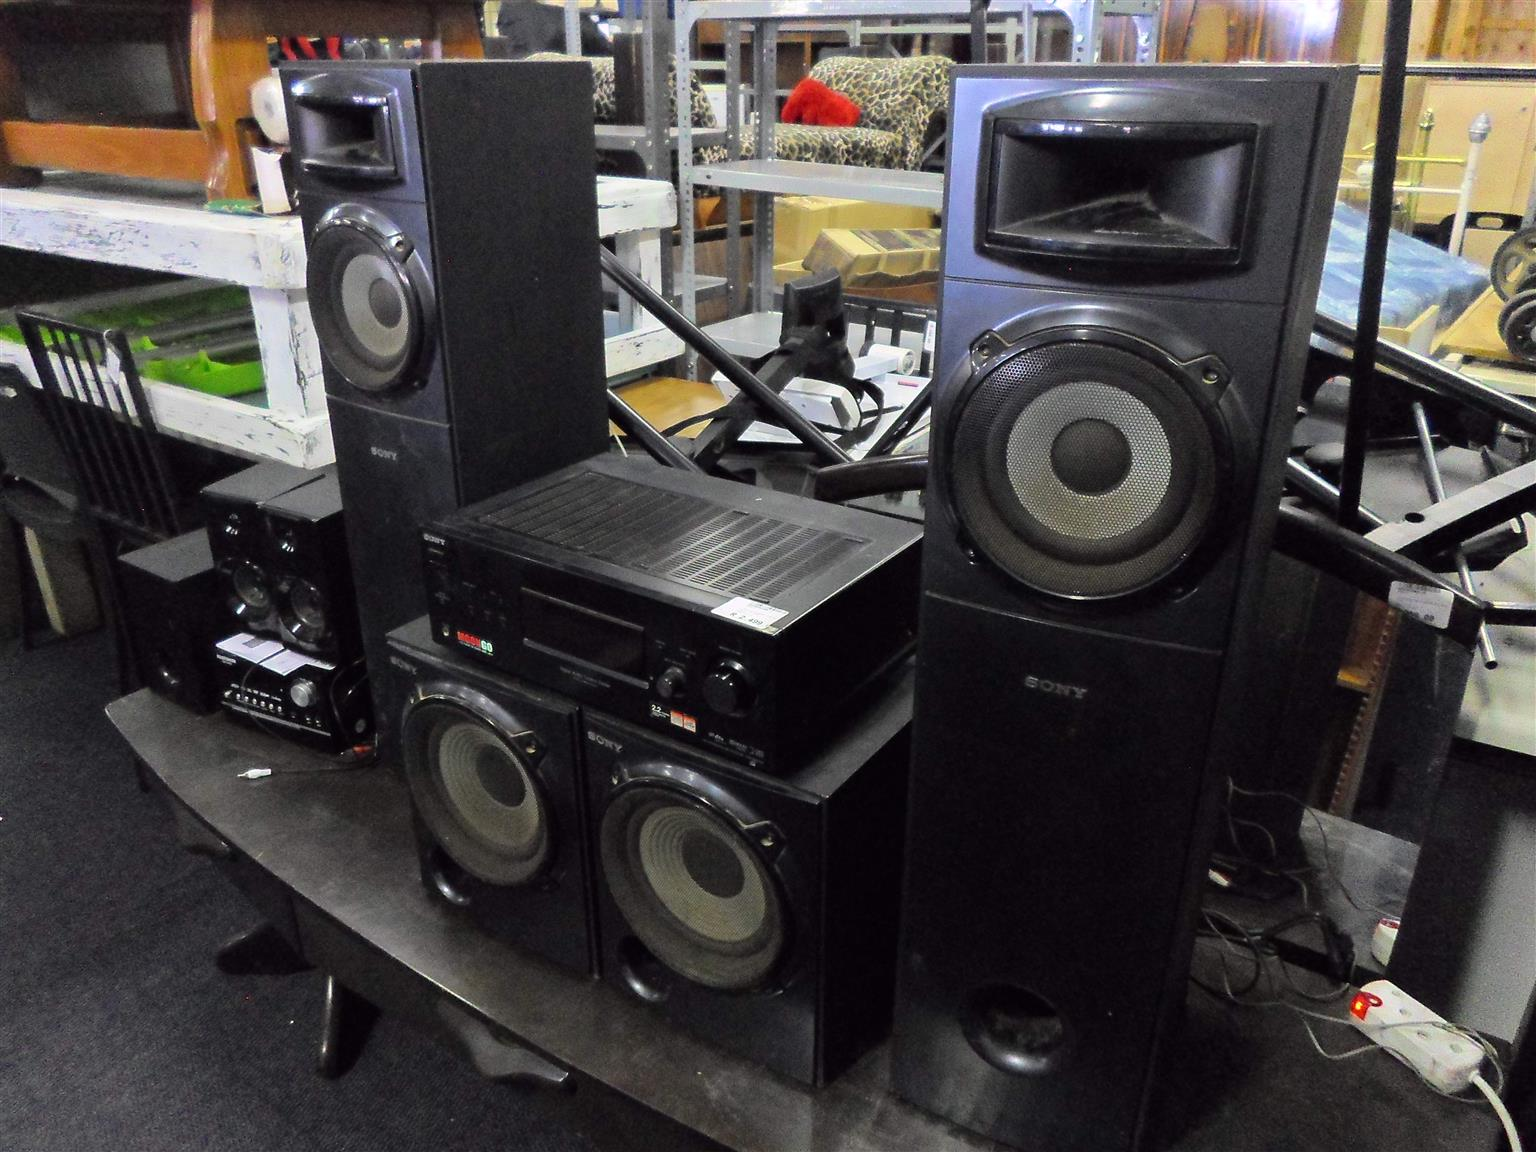 2.2 Channel Sony Home Theater System